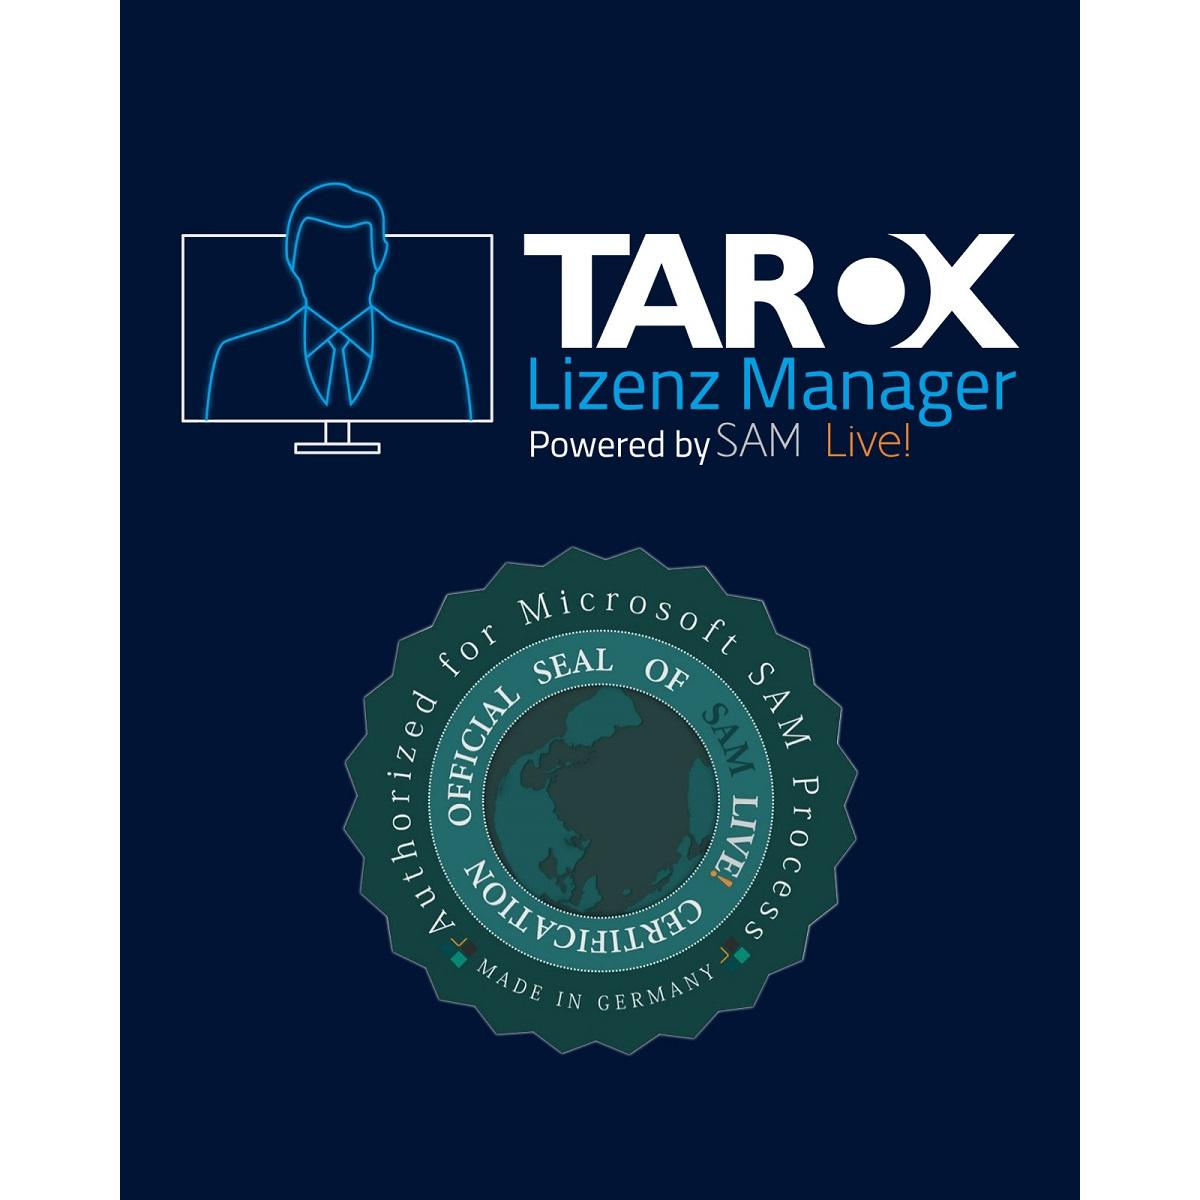 TAROX Lizenz Manager Starter Paket #    1- 199 Devices inkl.